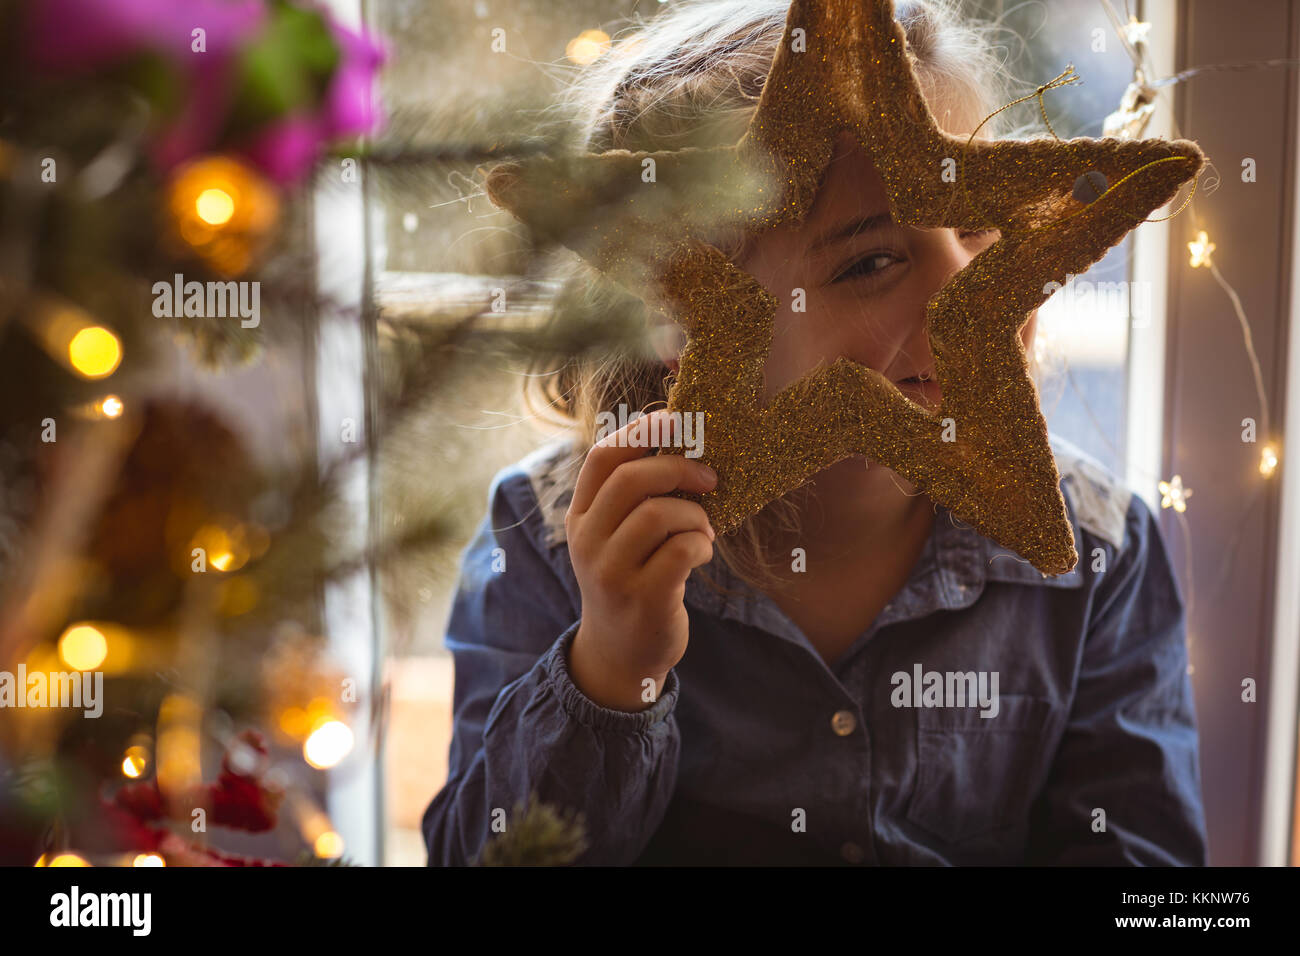 Girl looking standing near christmas tree and looking through star - Stock Image